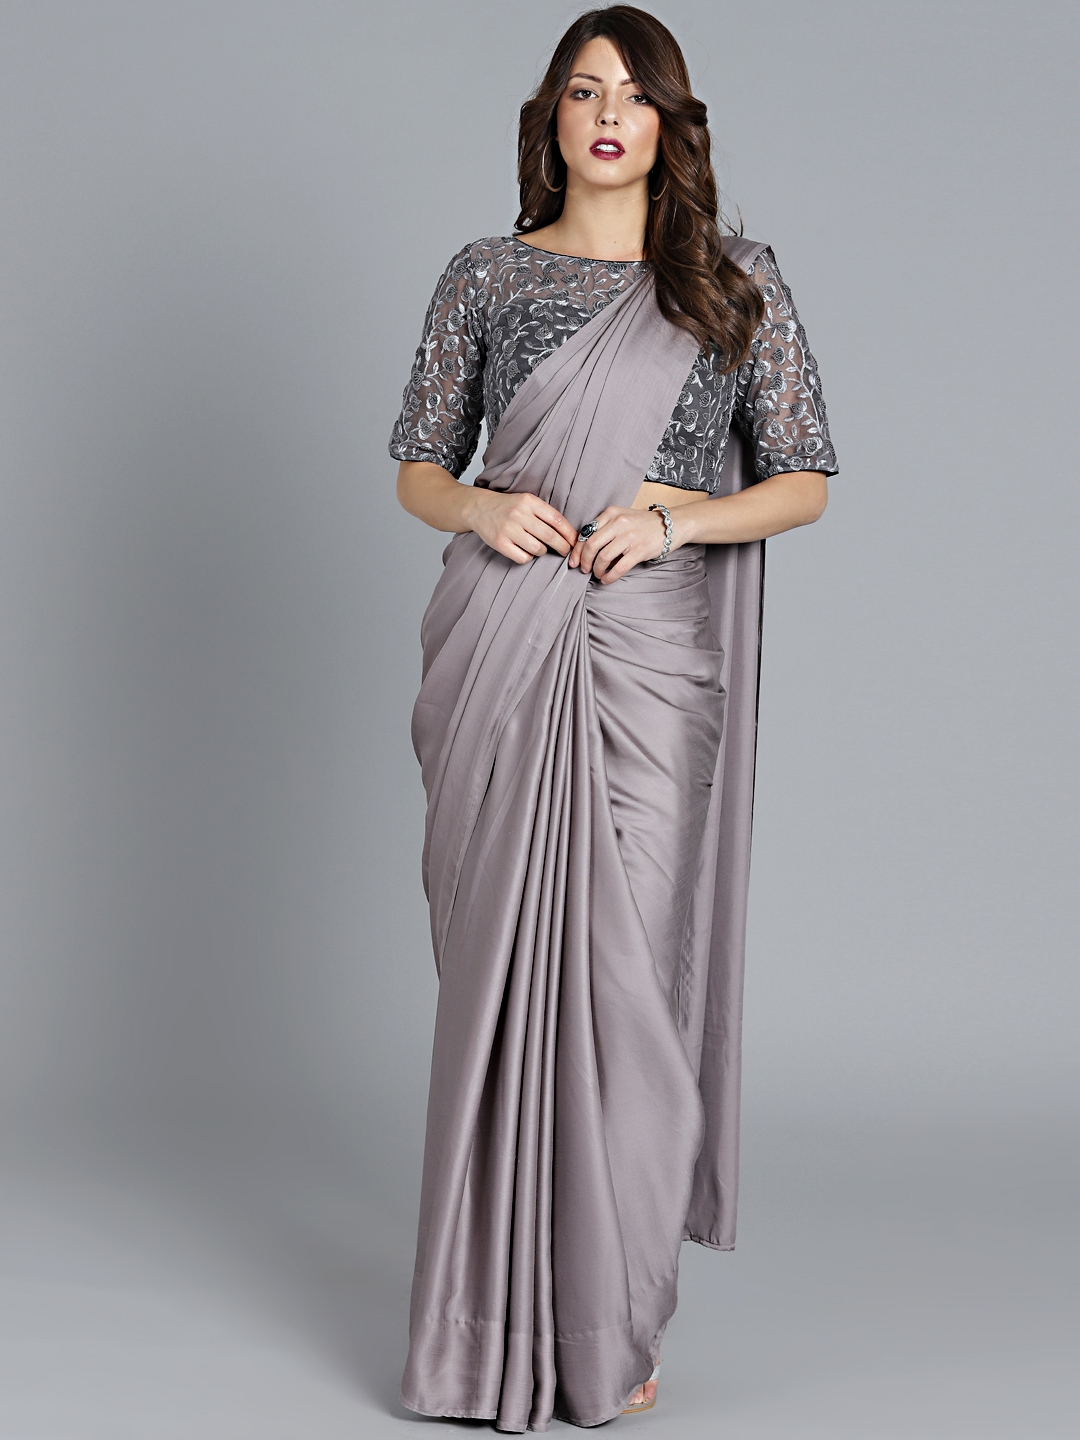 c2d9c7c622 Buy Bollywood Vogue Grey Embroidered Saree With Stitched Blouse ...